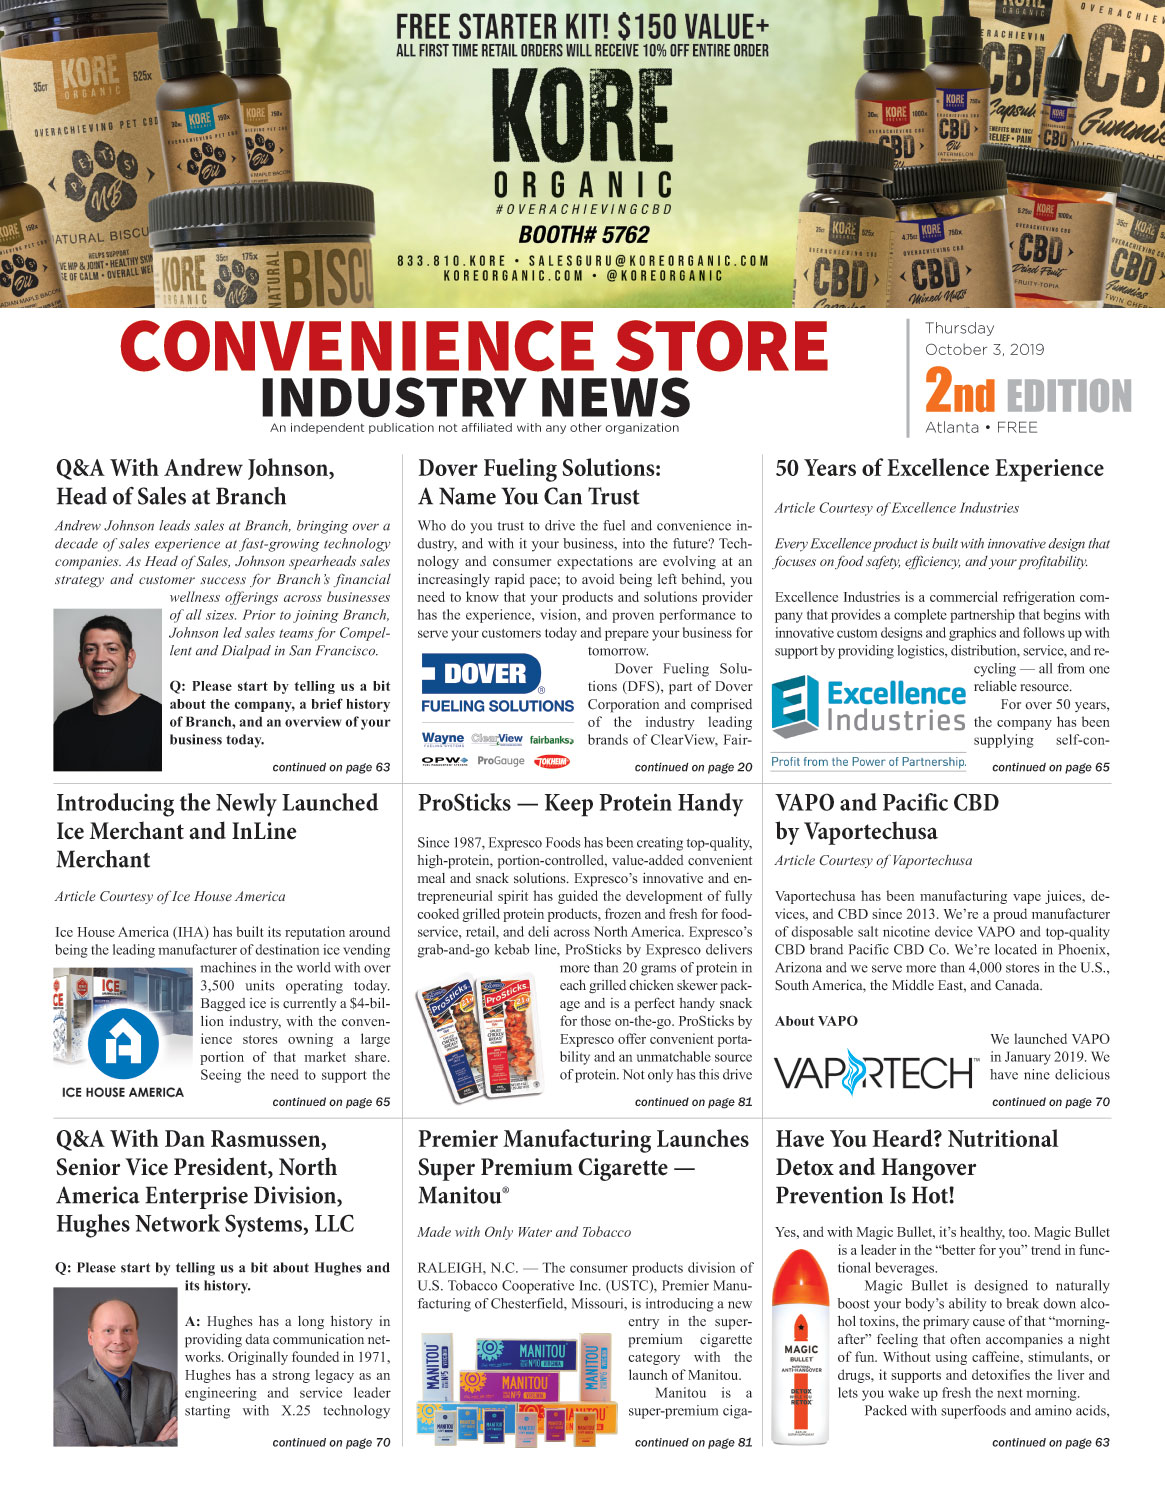 Convenience Store Industry News